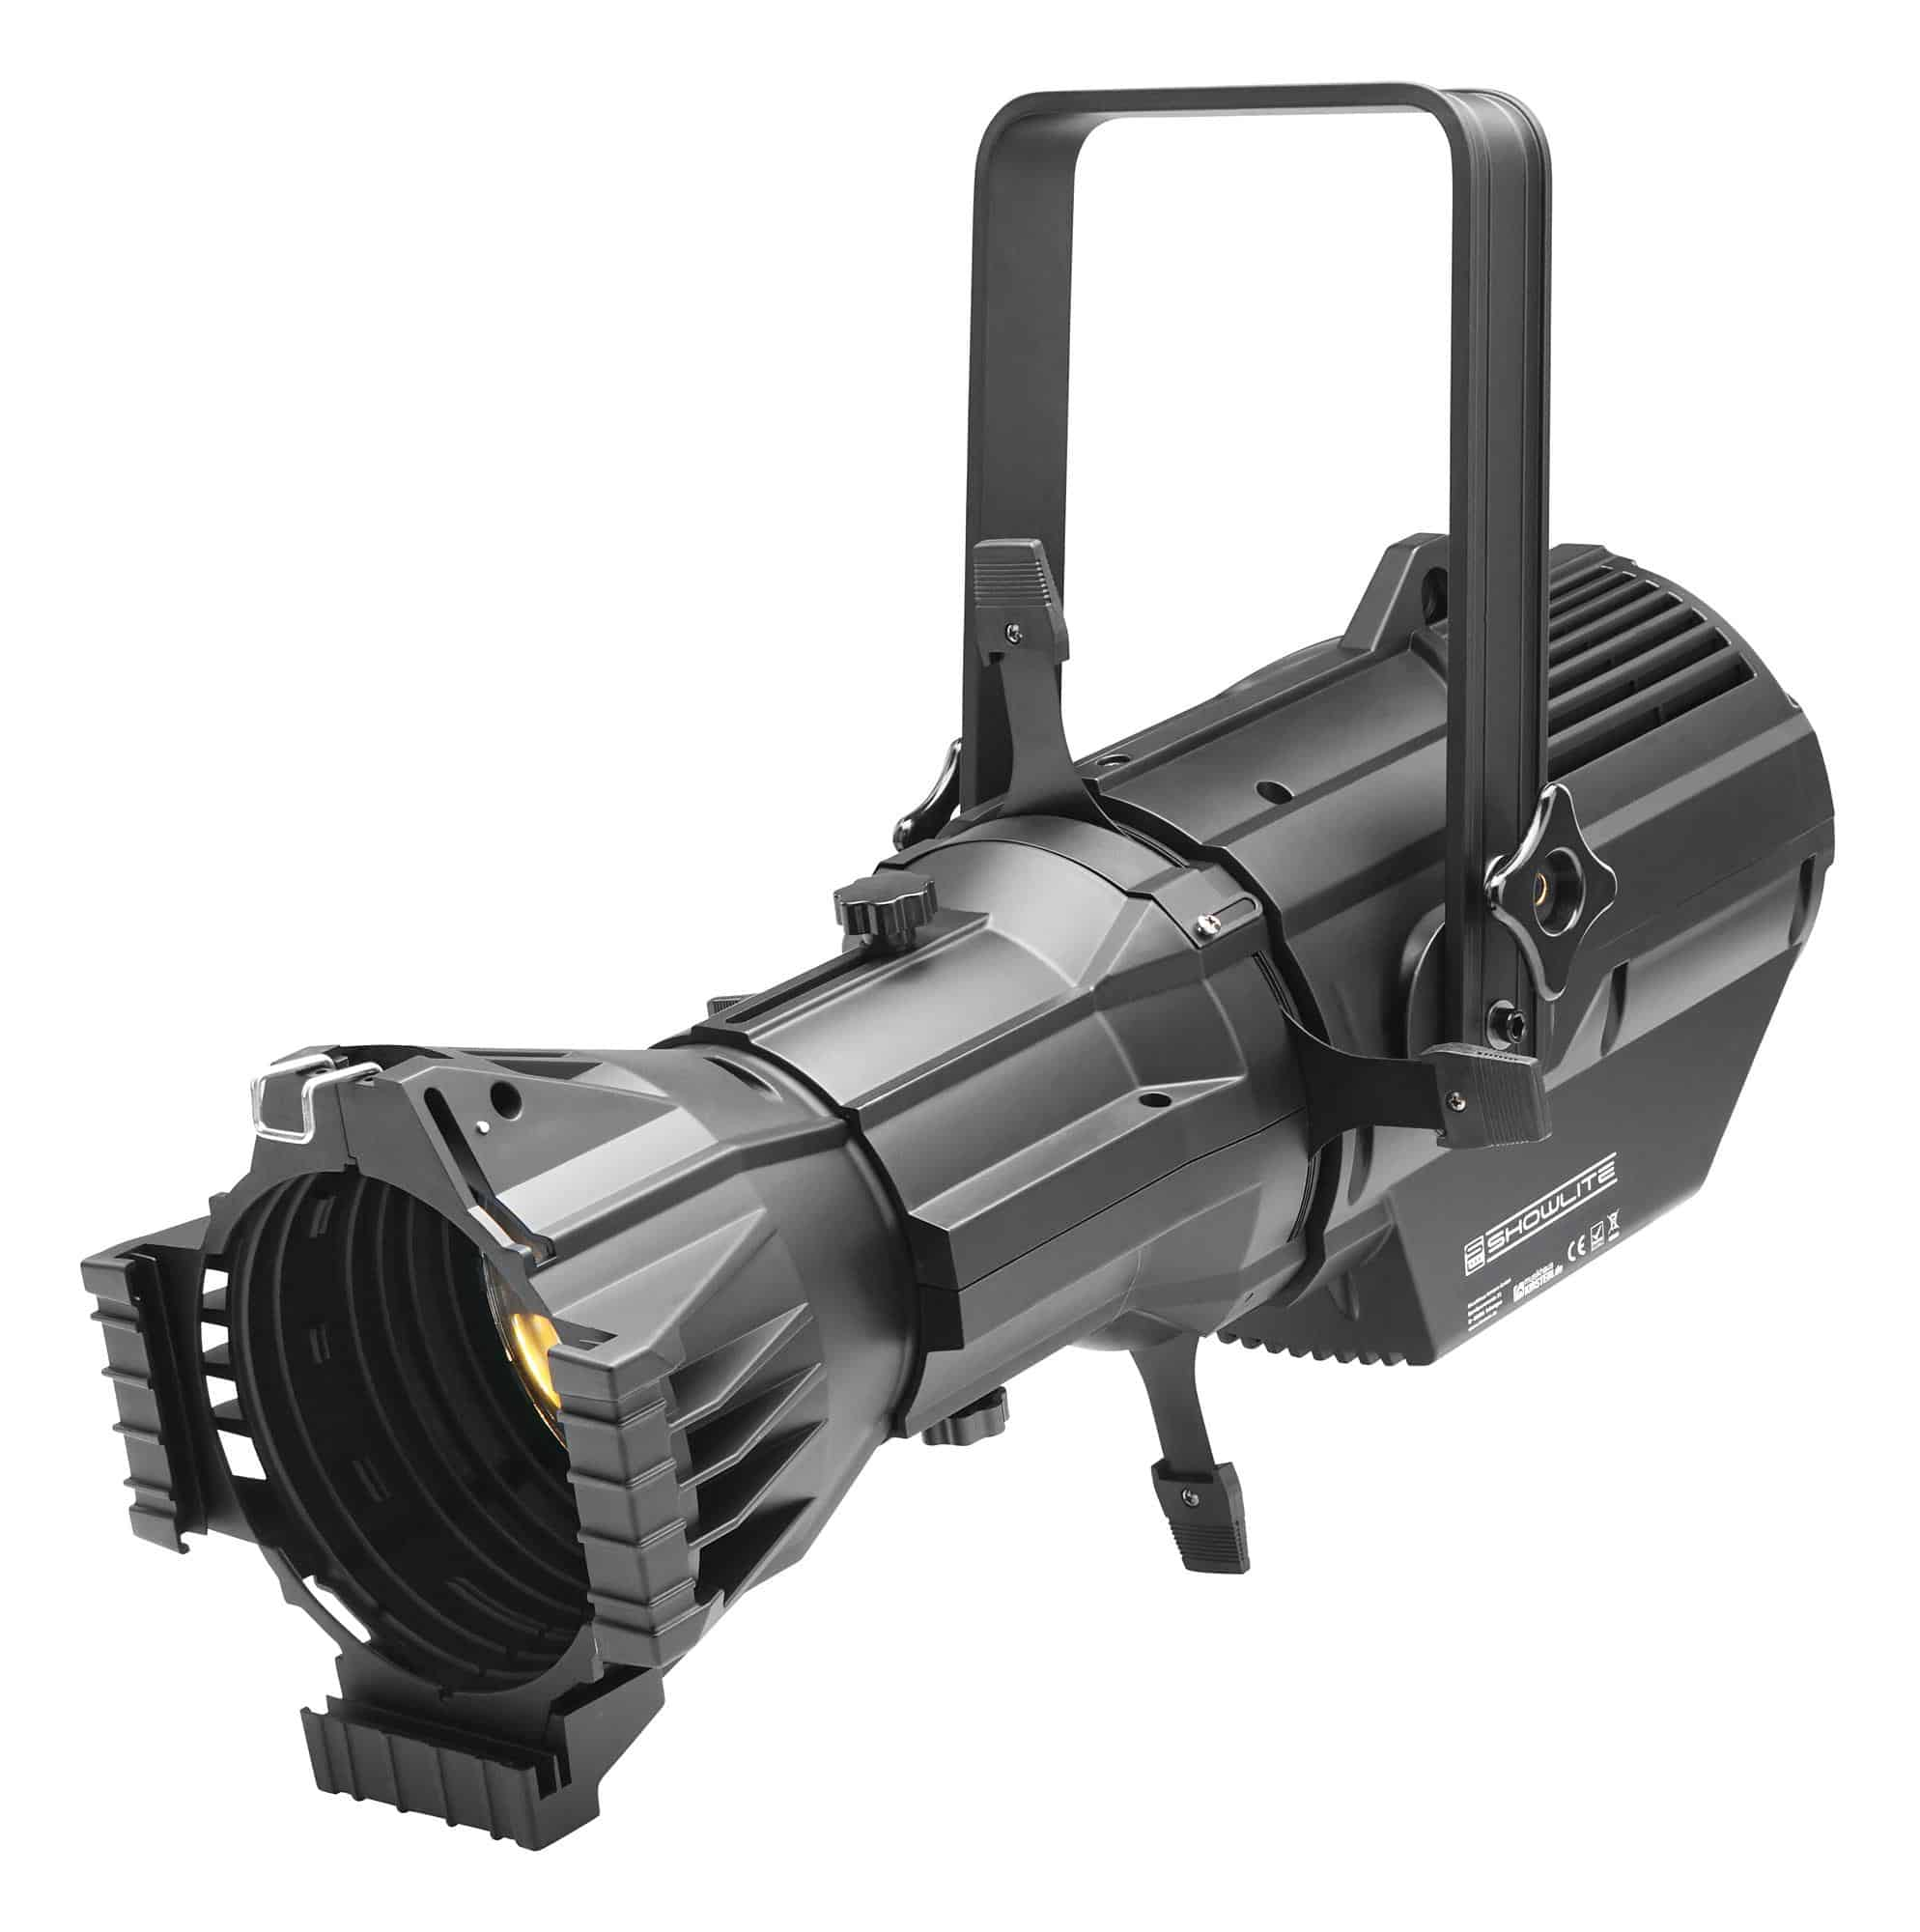 Showlite CPR 60|26 W LED Profilscheinwerfer 26° 200 Watt